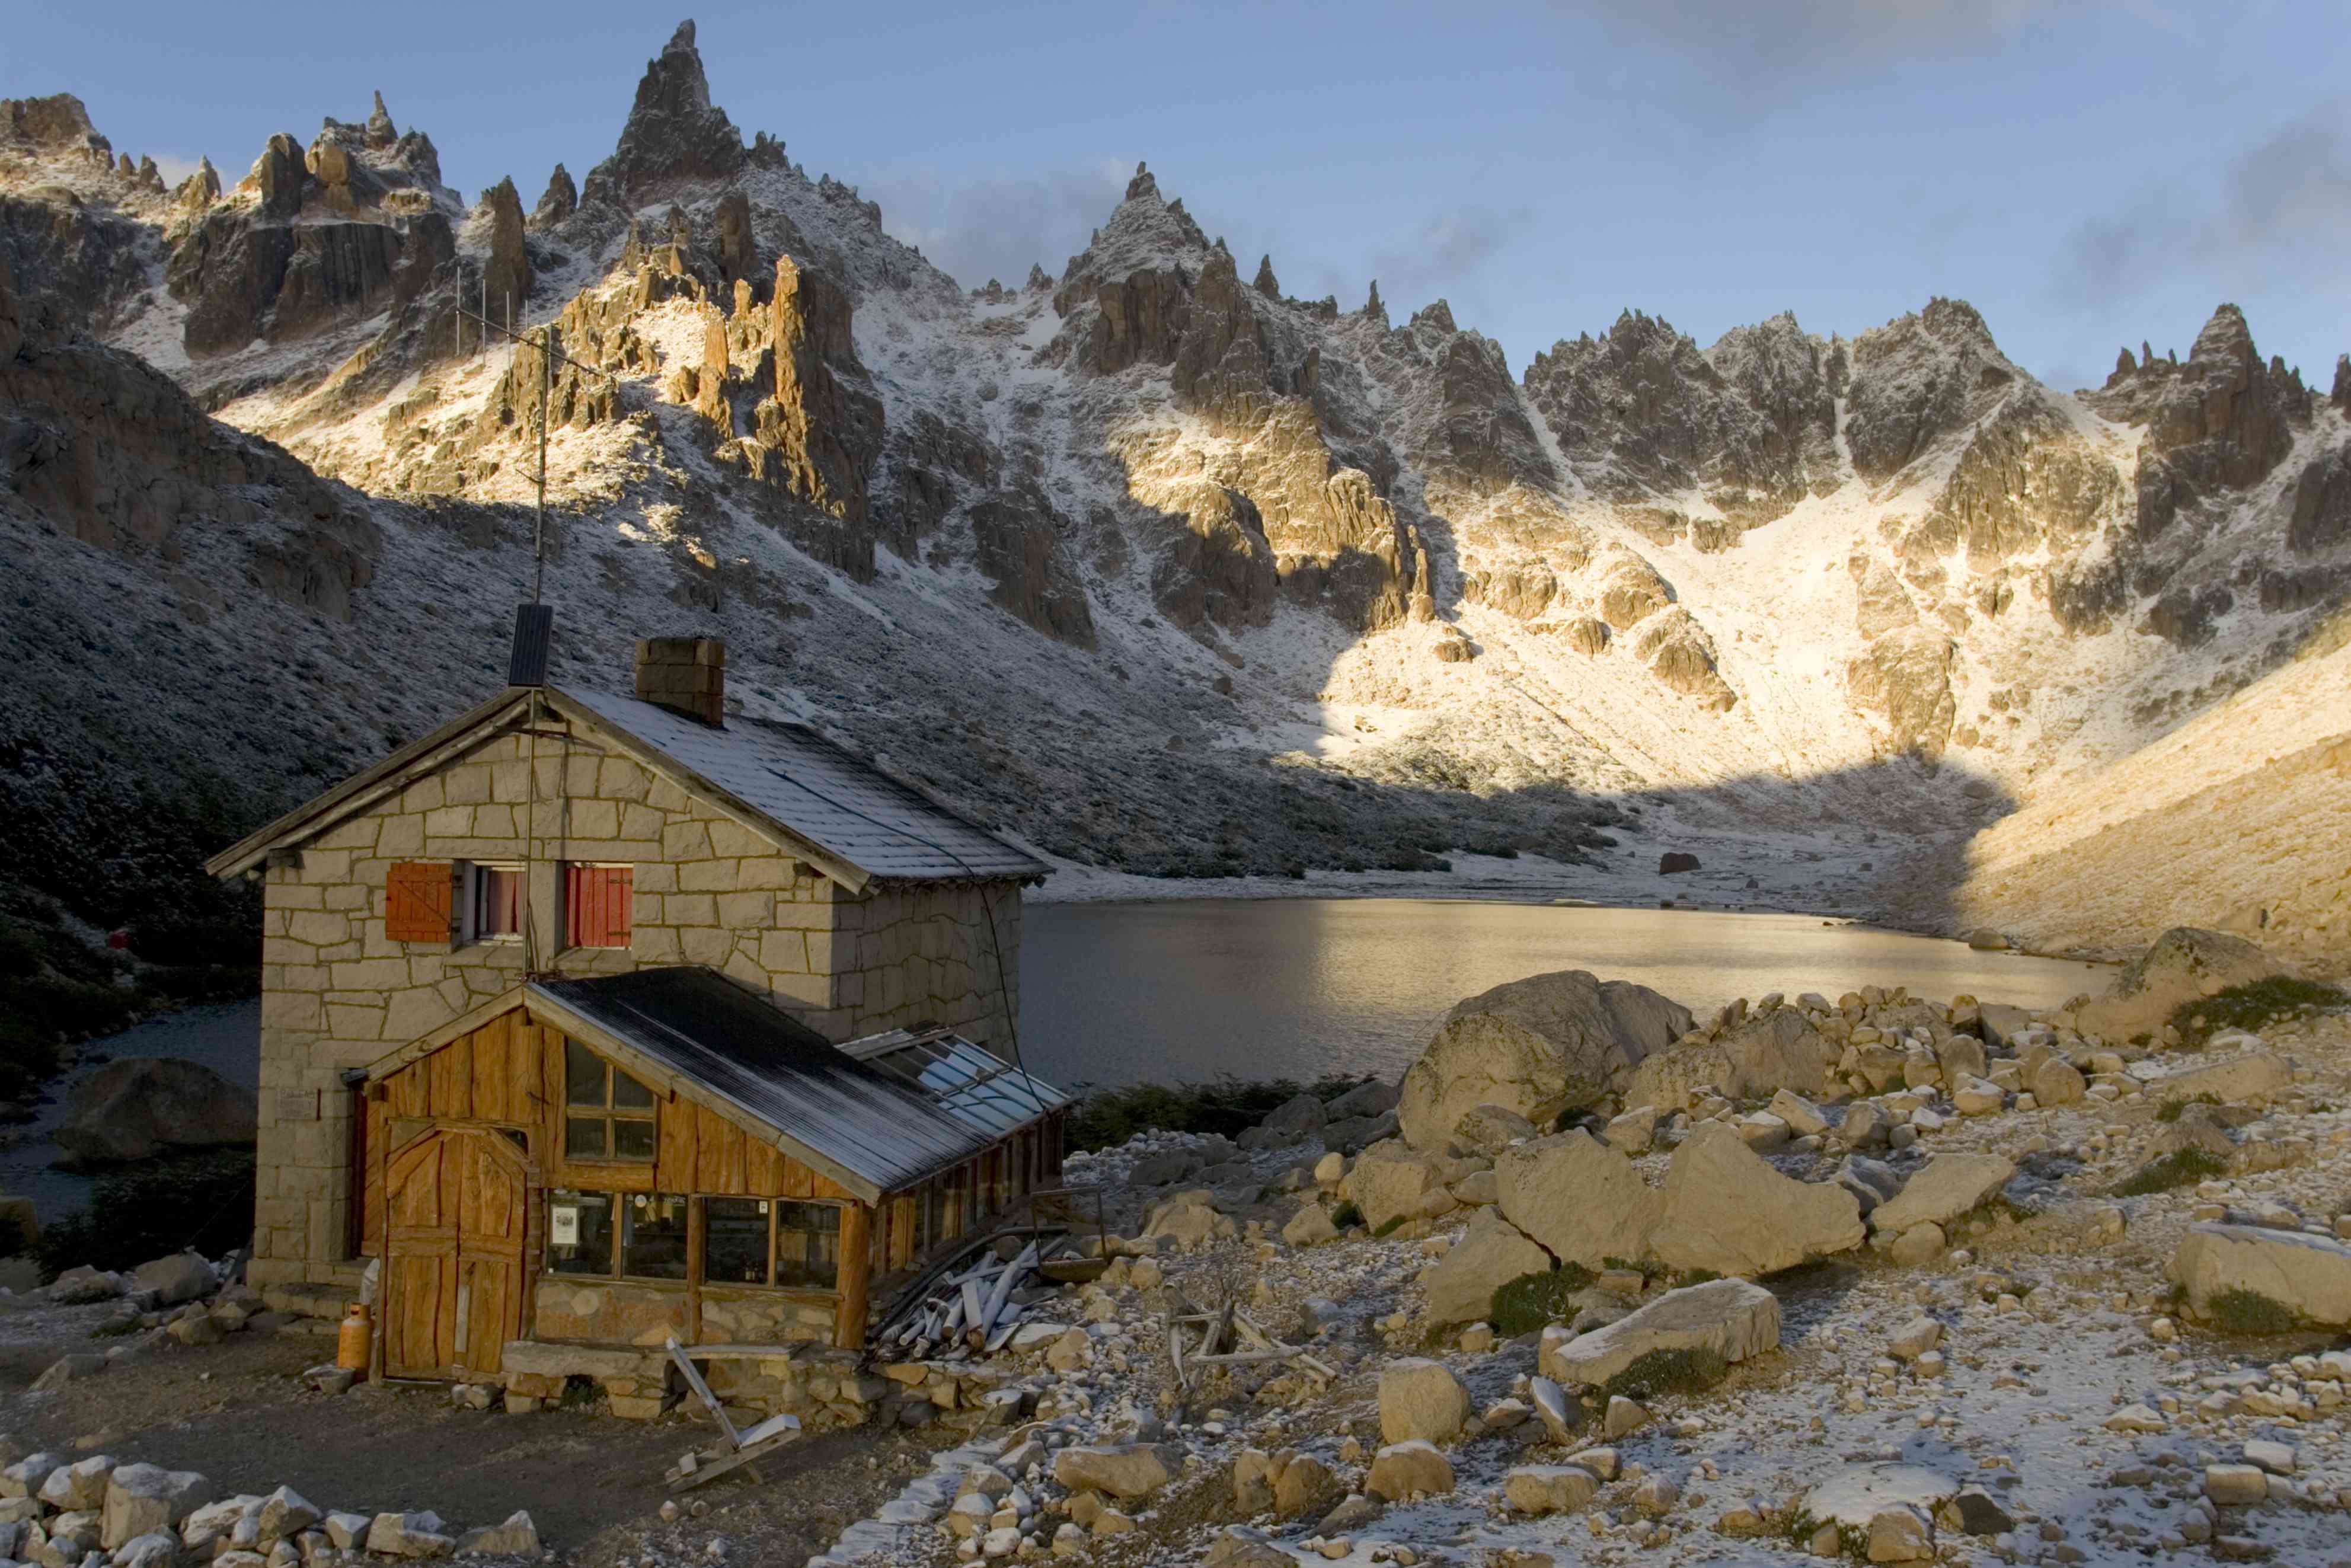 Refugio Frey by Laguna tonchek after a mid-summer snow storm.